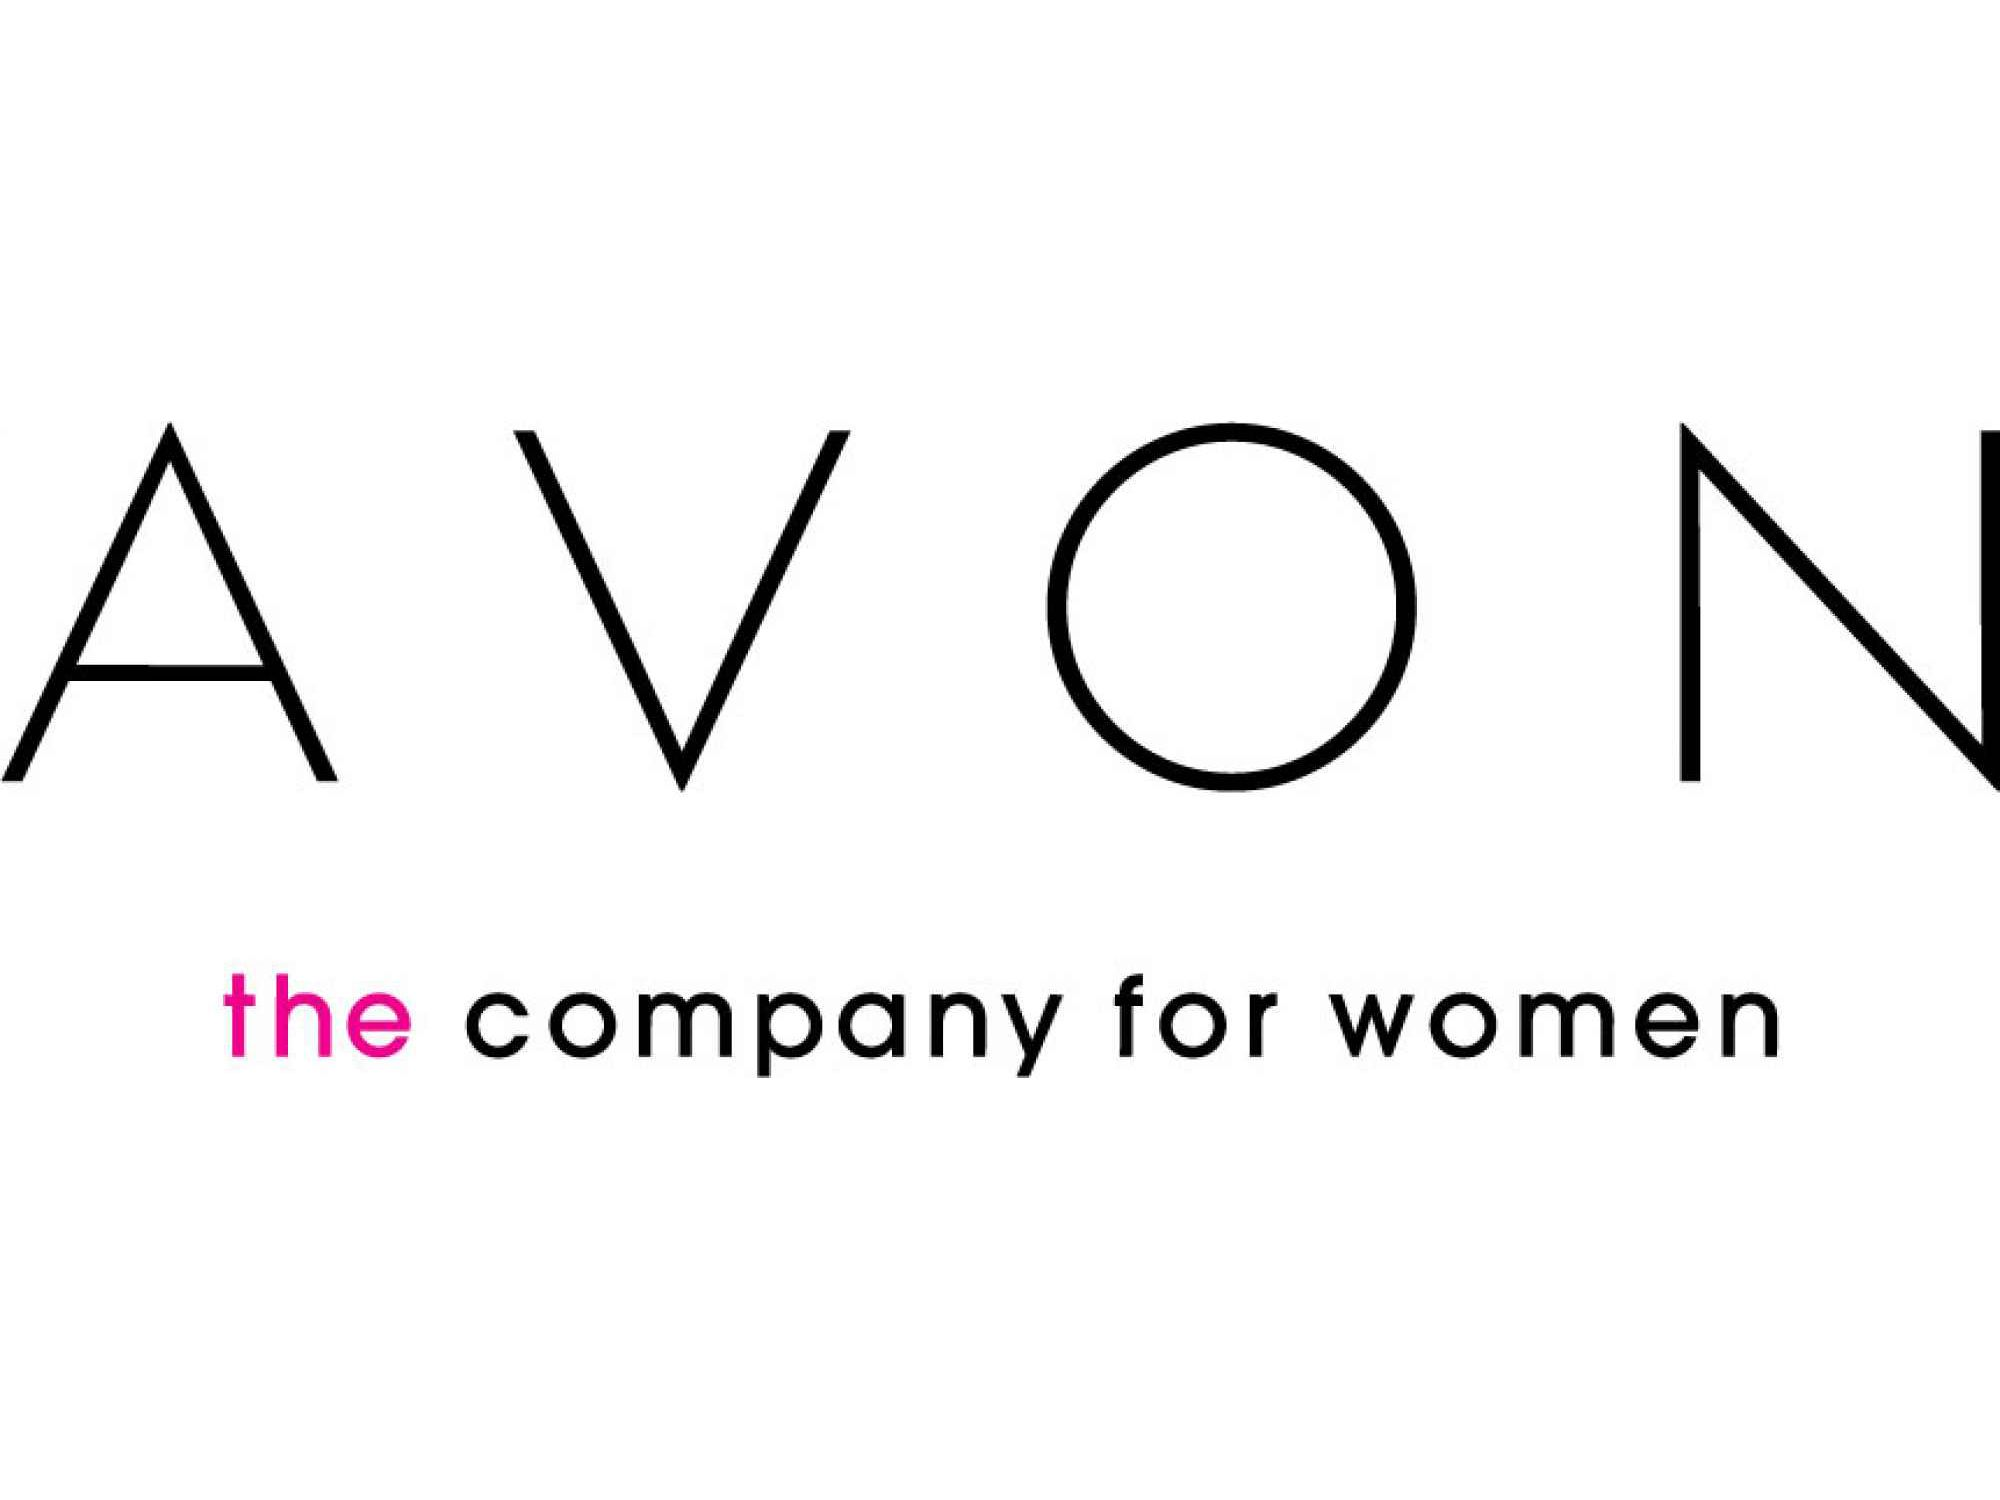 Avon Products Working Mother Avon Good Company